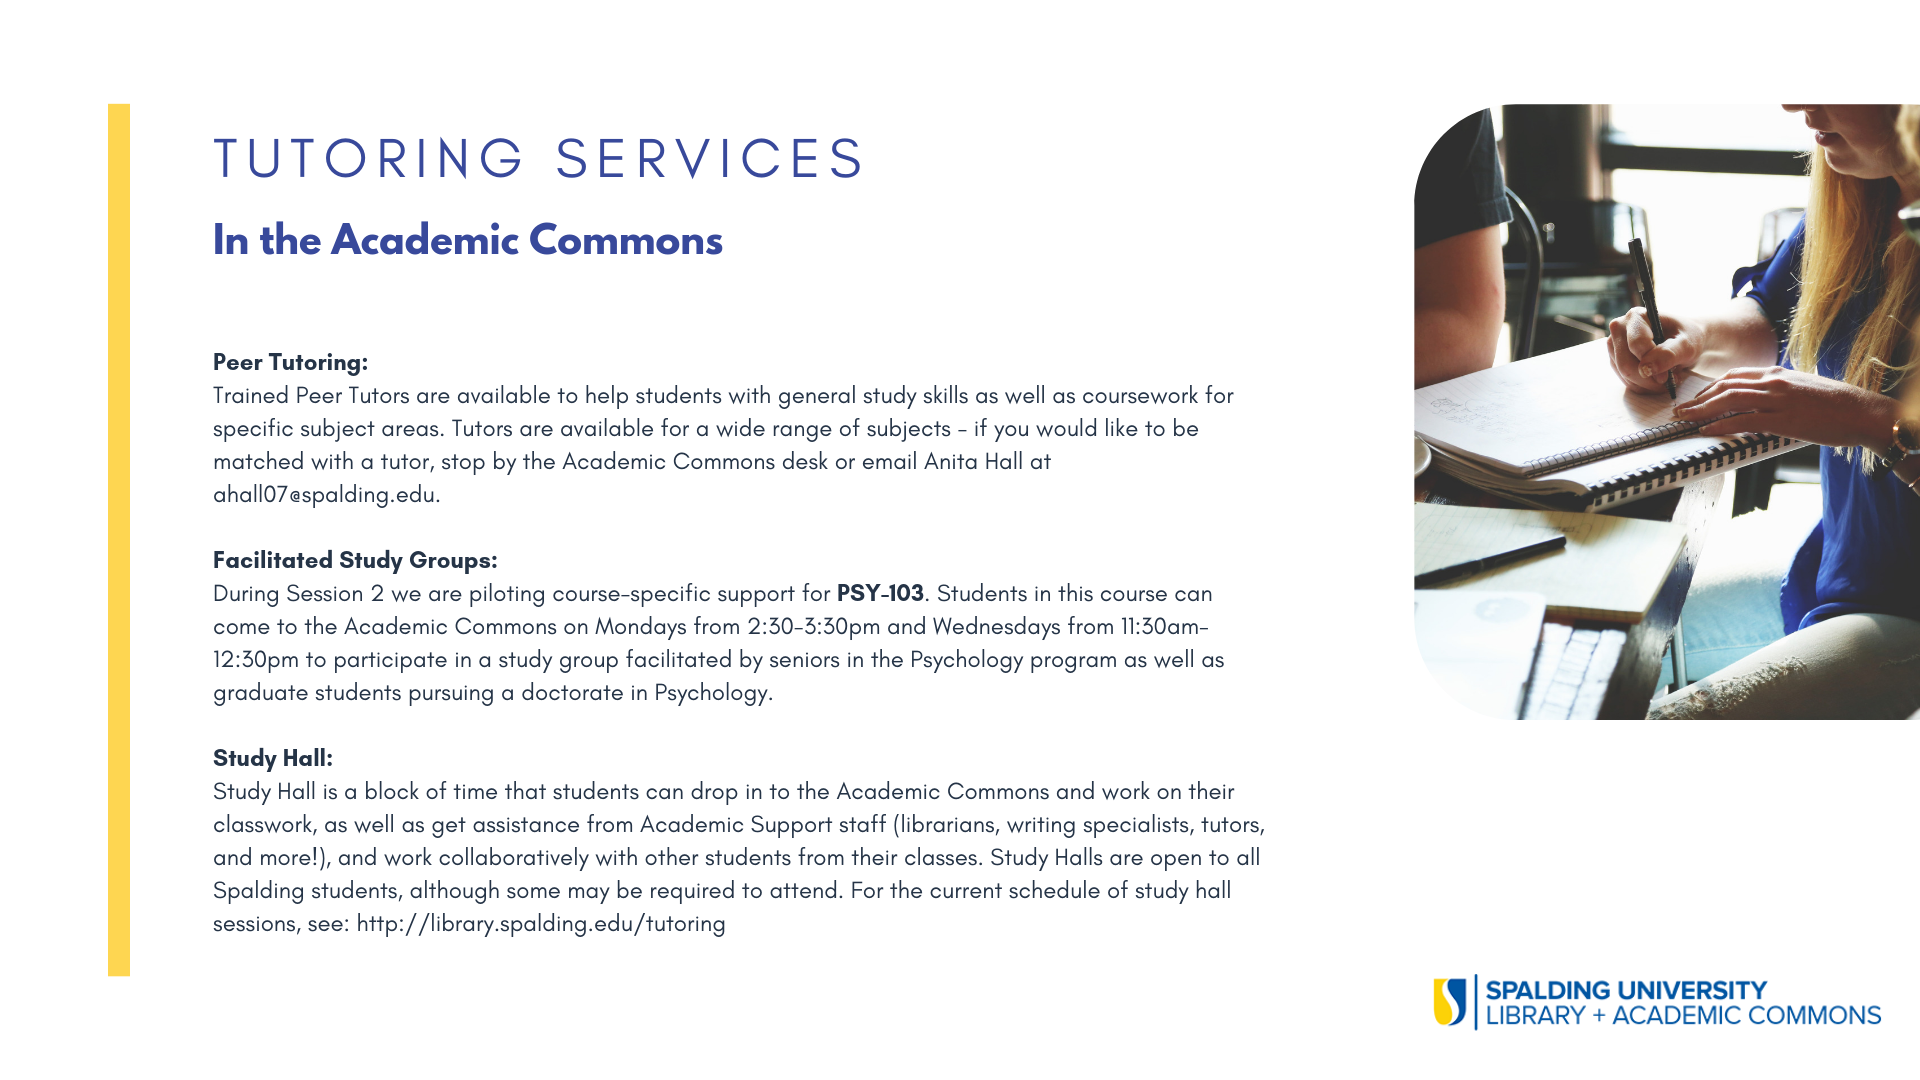 Flyer with information about tutoring services